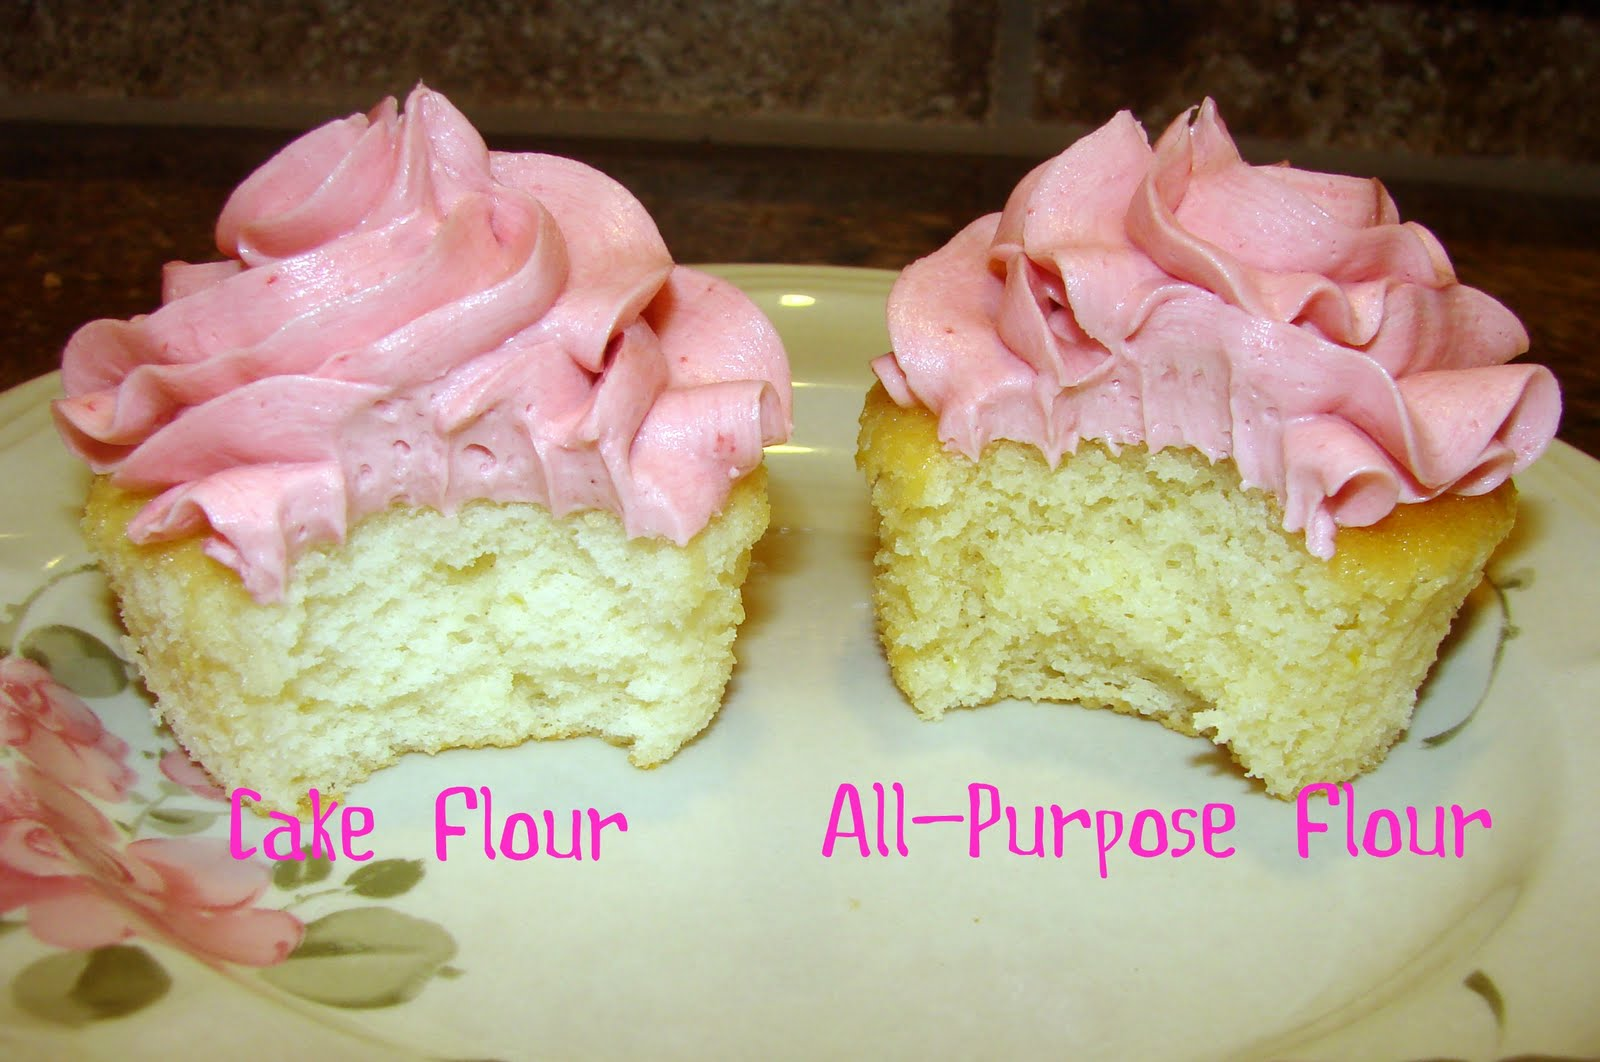 Can You Use All Purpose Flour Instead Of Cake Flour